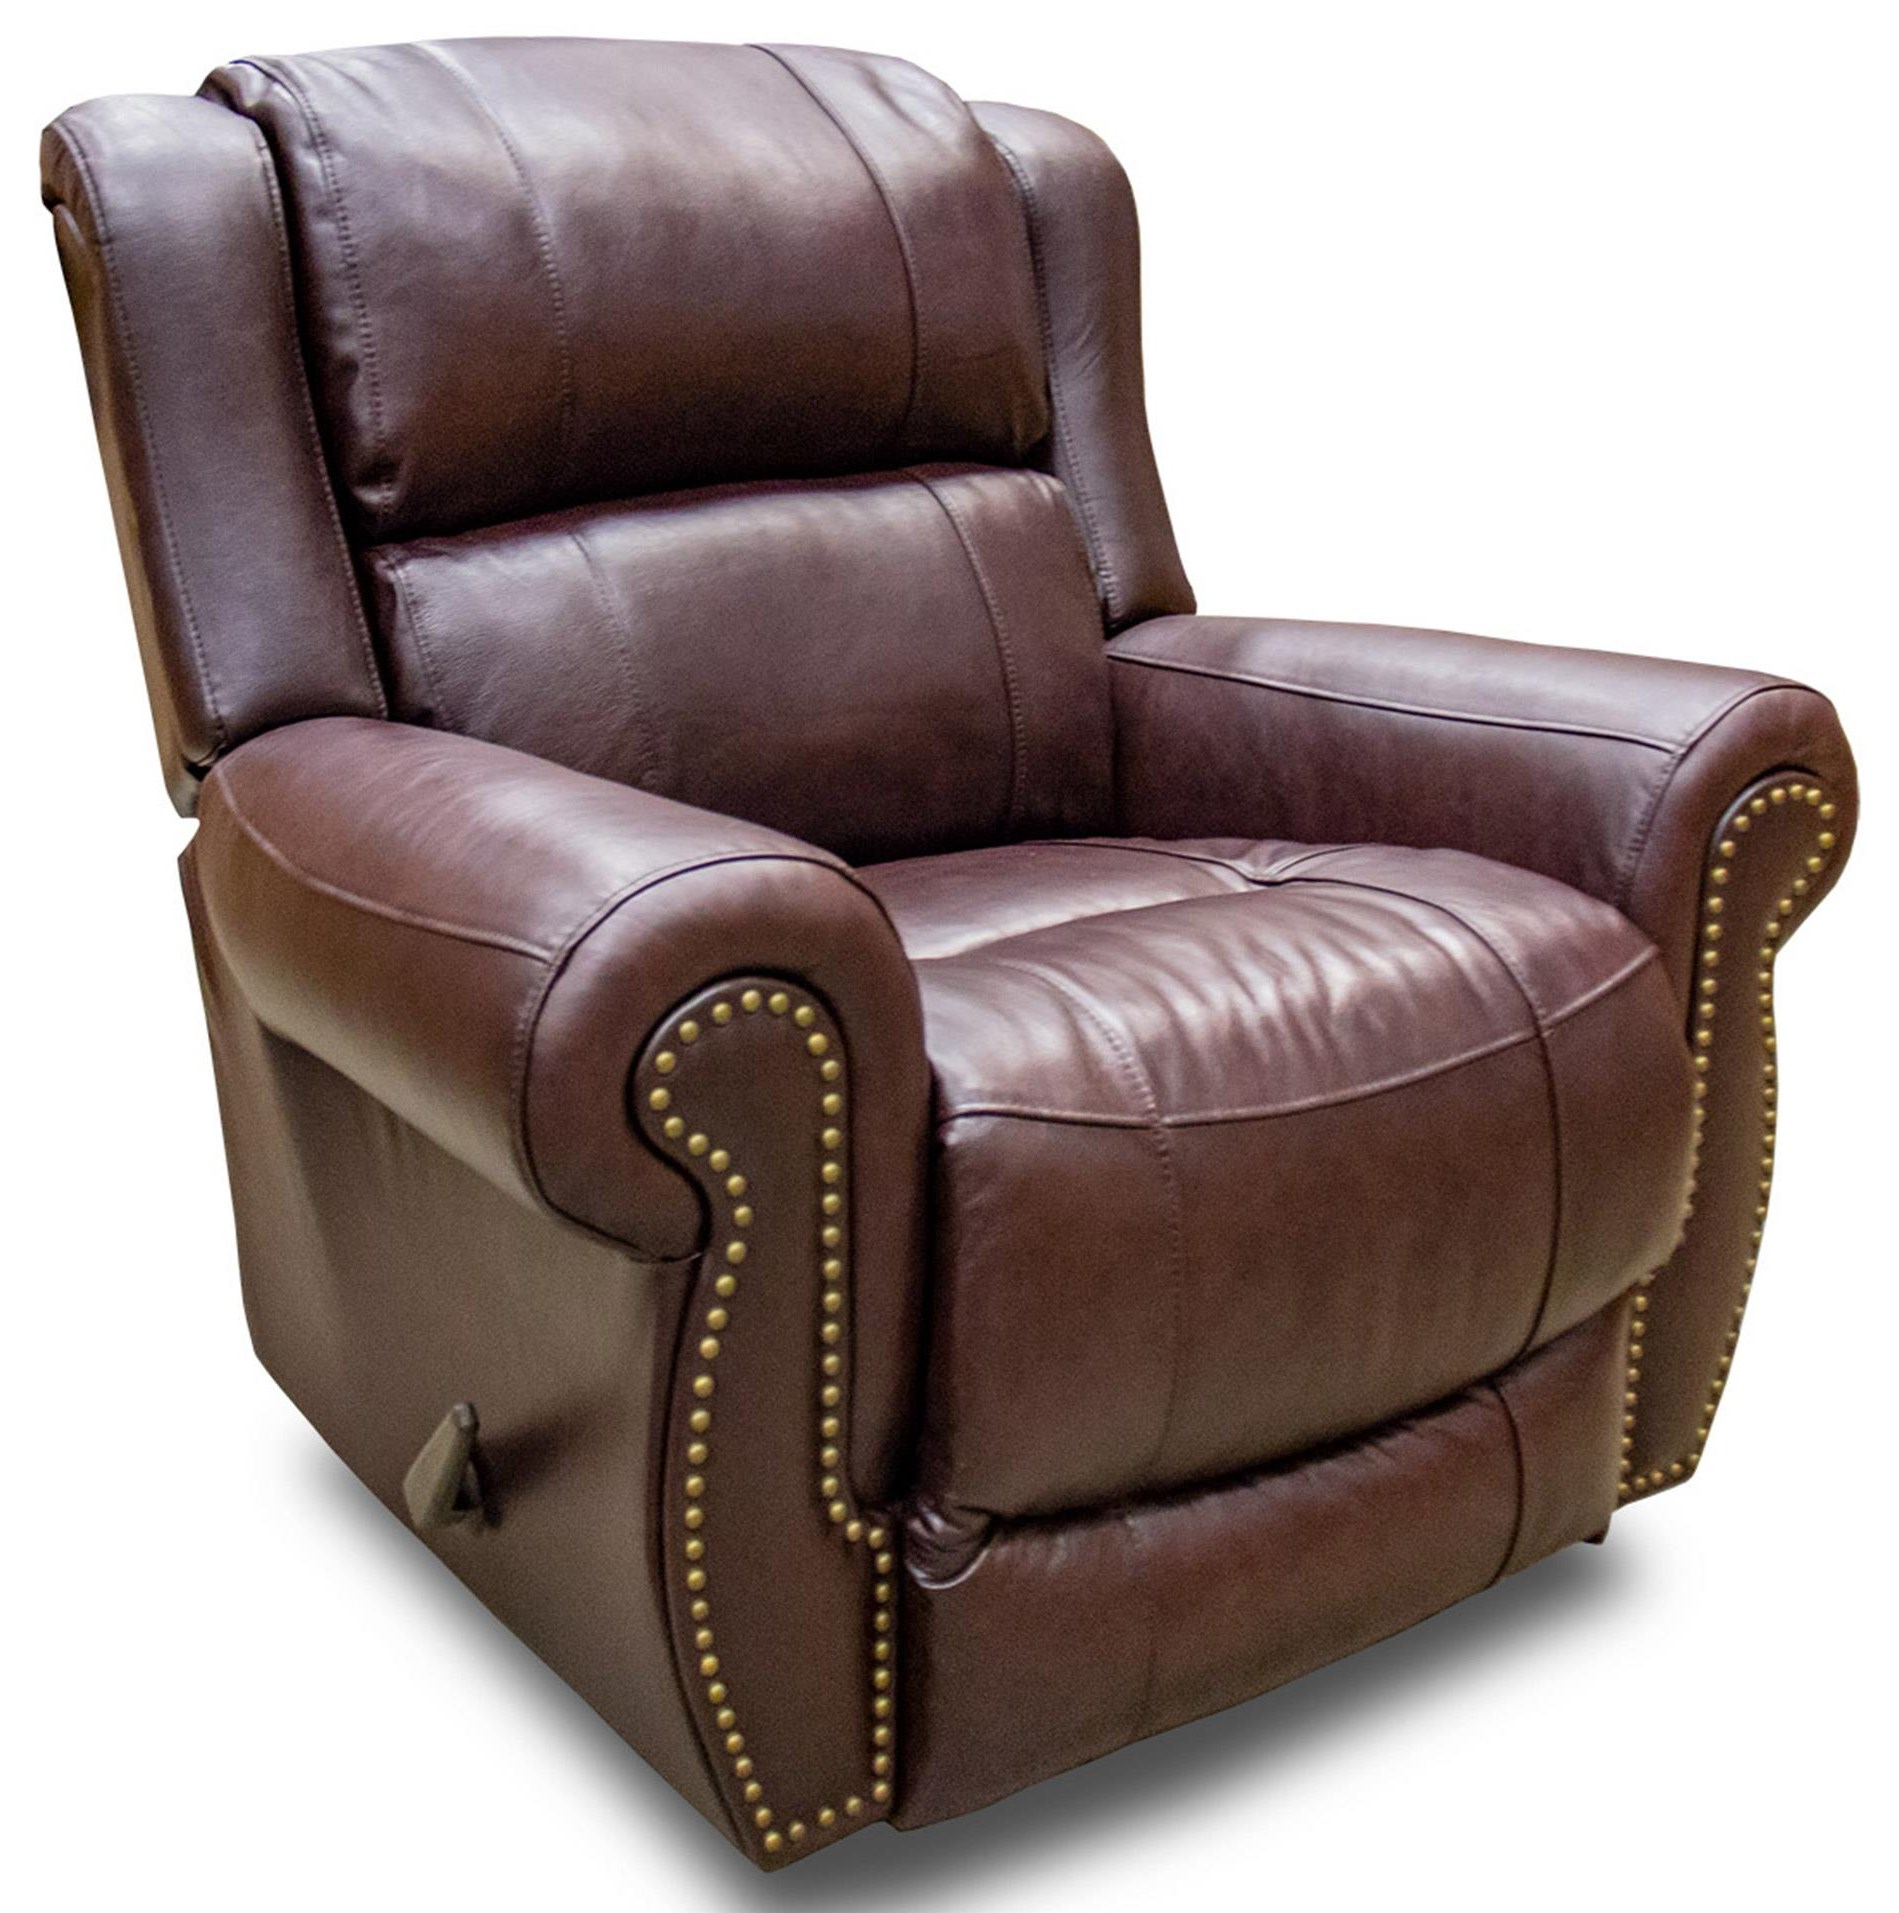 Chocolate Leather Rocker Recliner